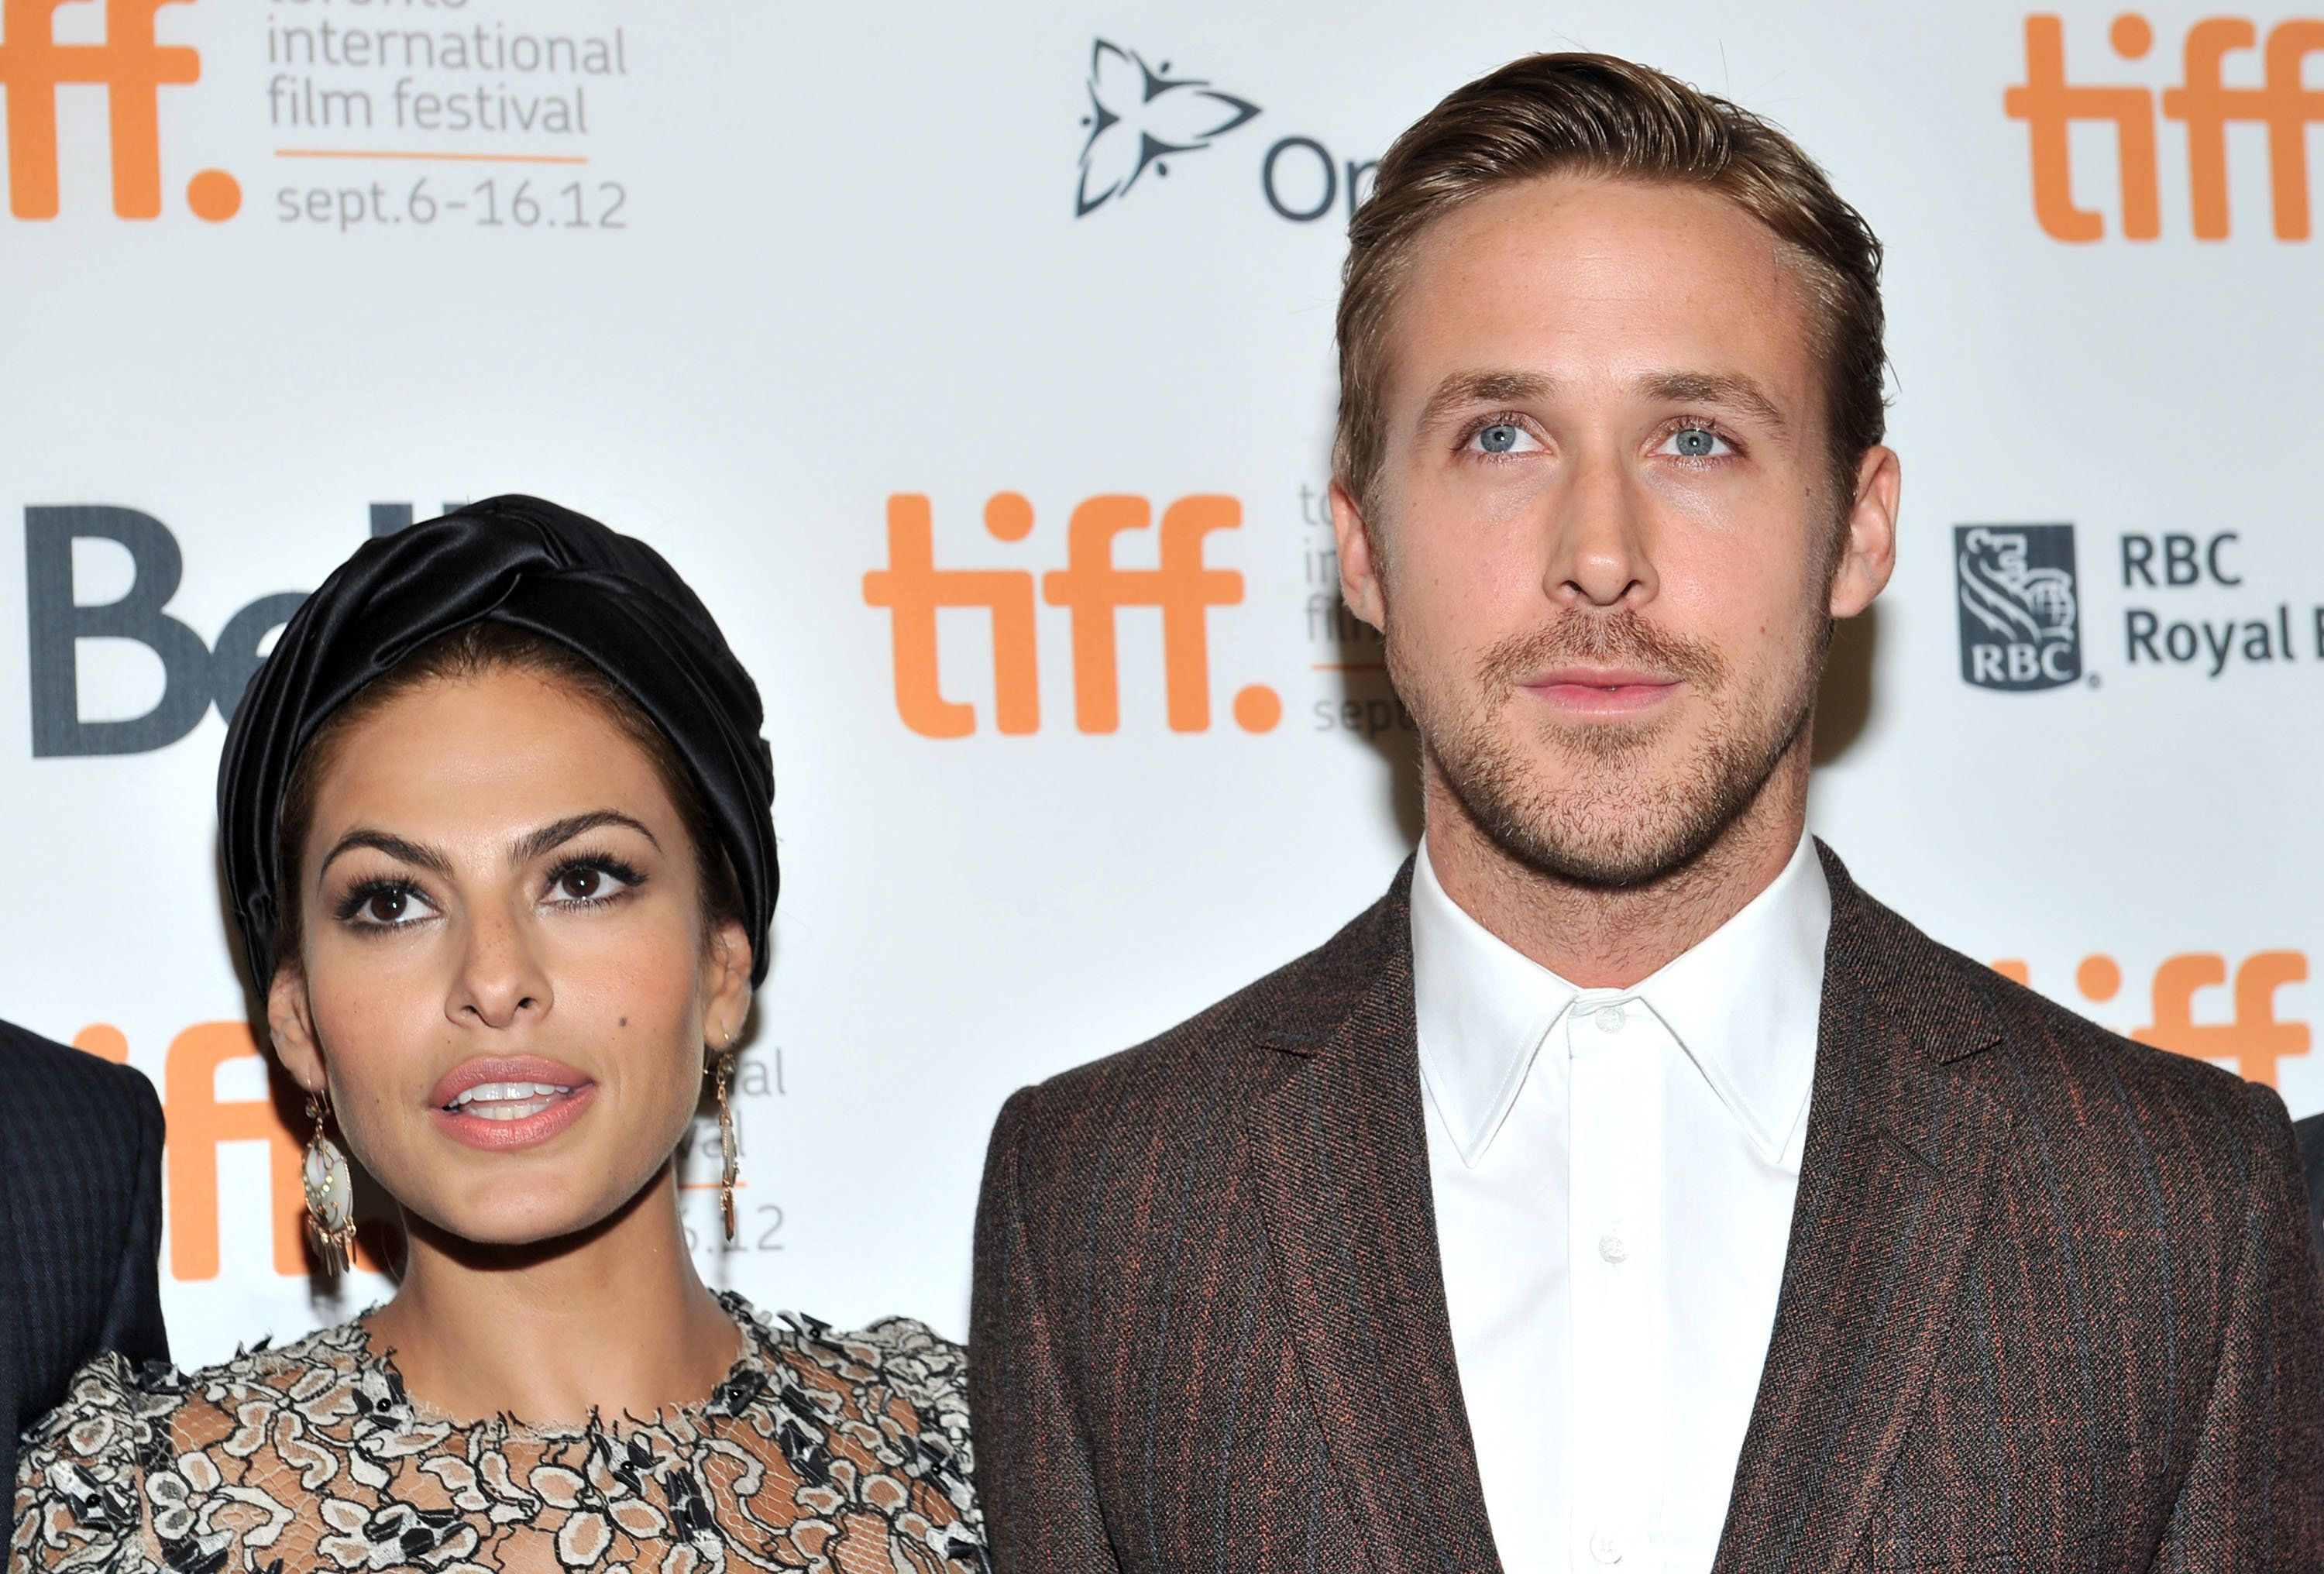 TORONTO, ON - SEPTEMBER 07:  Actors (L-R) Eva Mendes and Ryan Gosling attend 'The Place Beyond The Pines' premiere during the 2012 Toronto International Film Festival at Princess of Wales Theatre on September 7, 2012 in Toronto, Canada.  (Photo by Sonia Recchia/Getty Images)